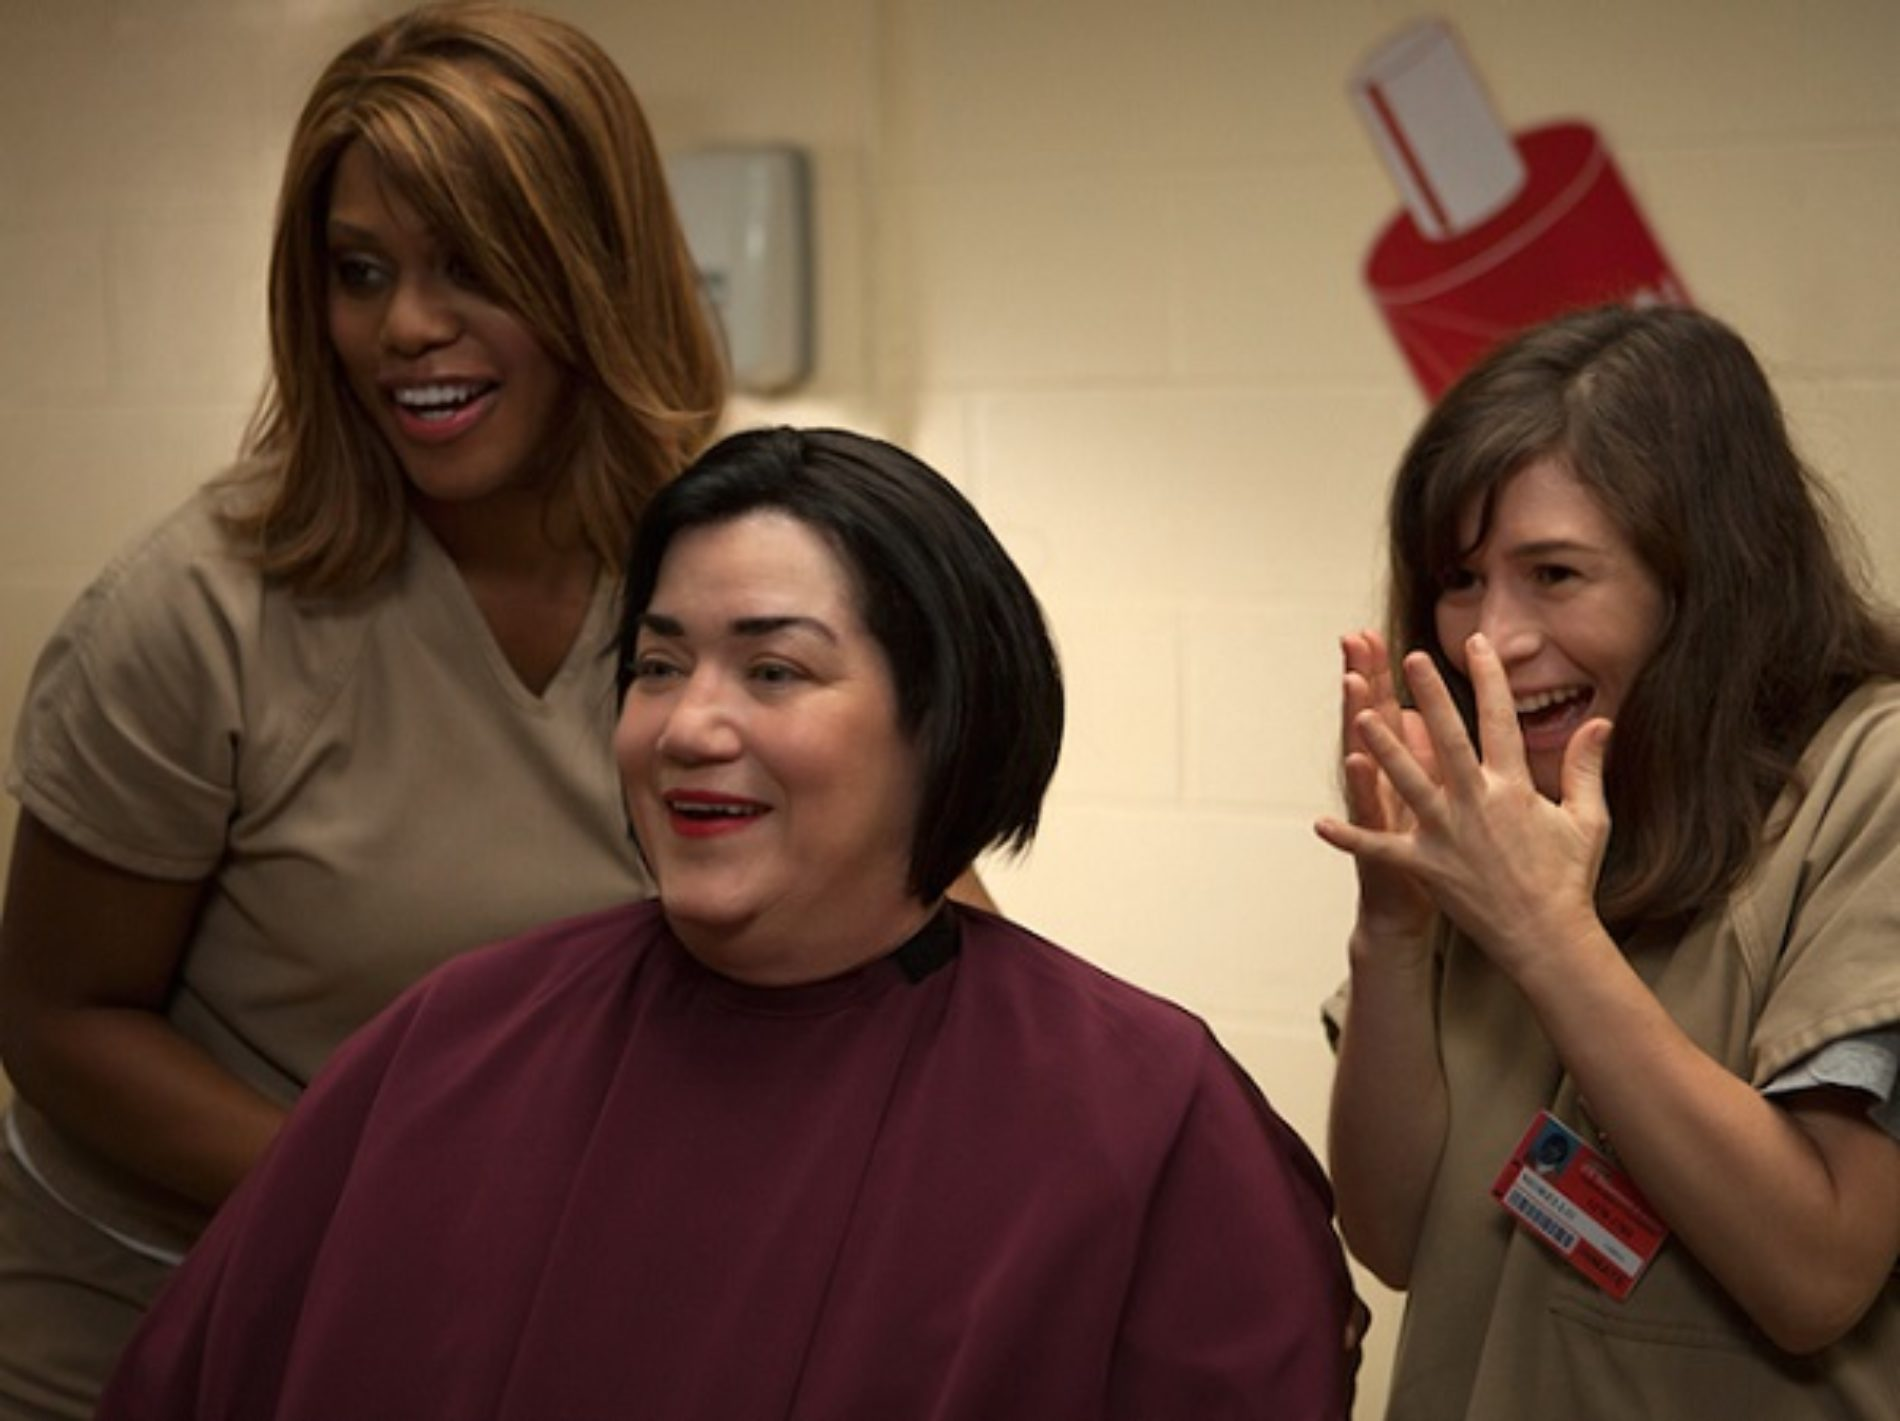 Cast of 'Orange is the New Black' On Being Part of the LGBT Movement